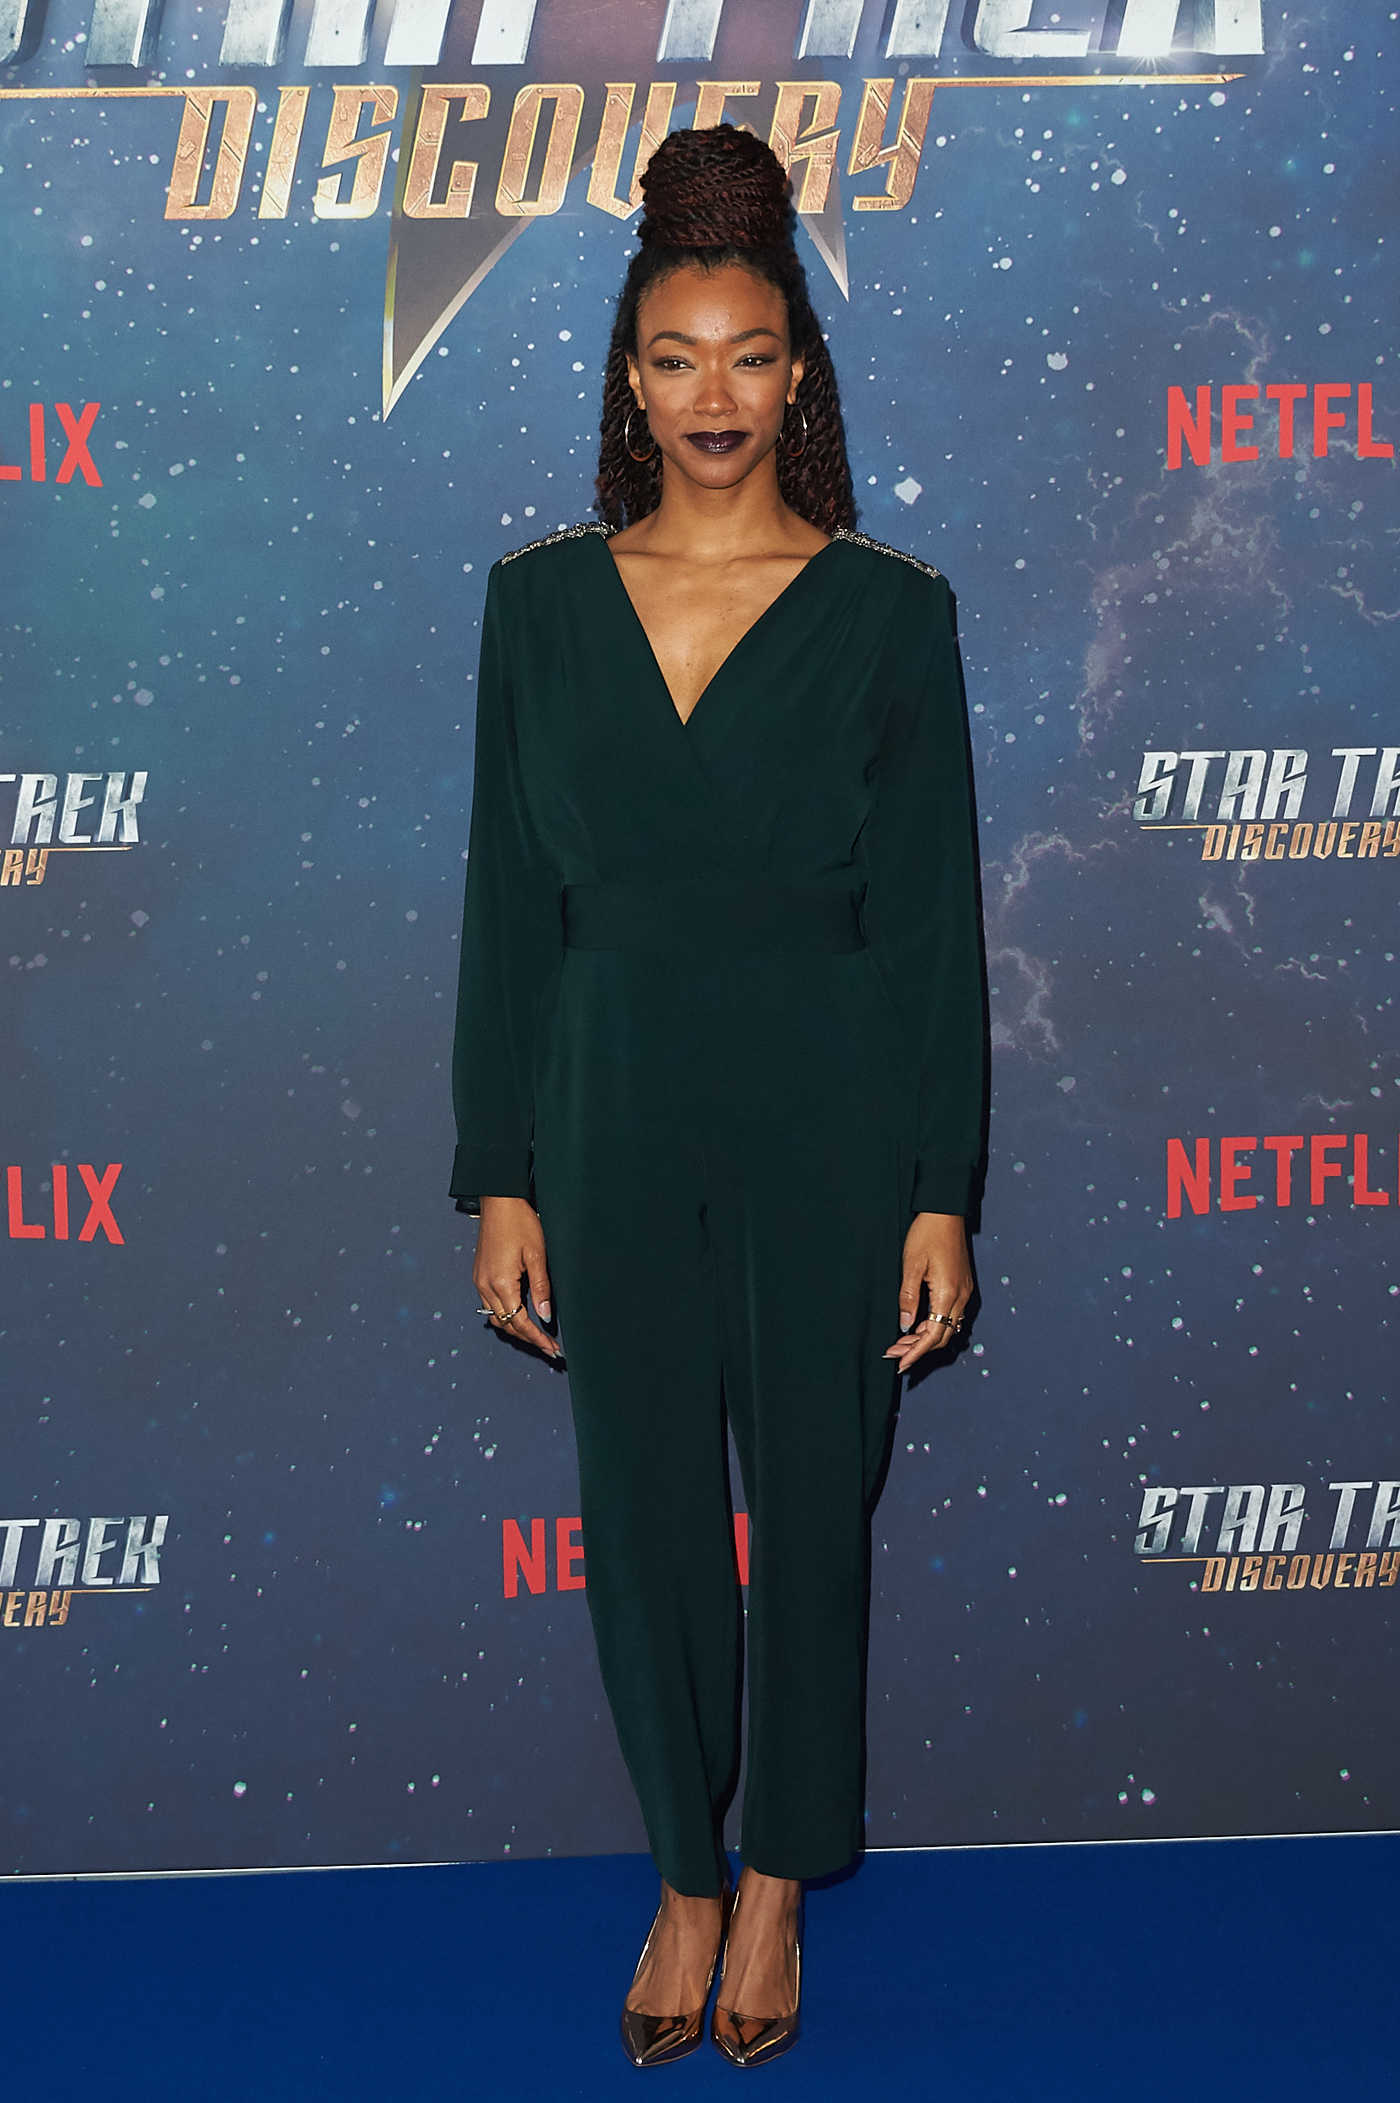 Sonequa Martin-Green at the Star Trek: Discovery Fan Screening at the Millbank Tower in London 11/05/2017